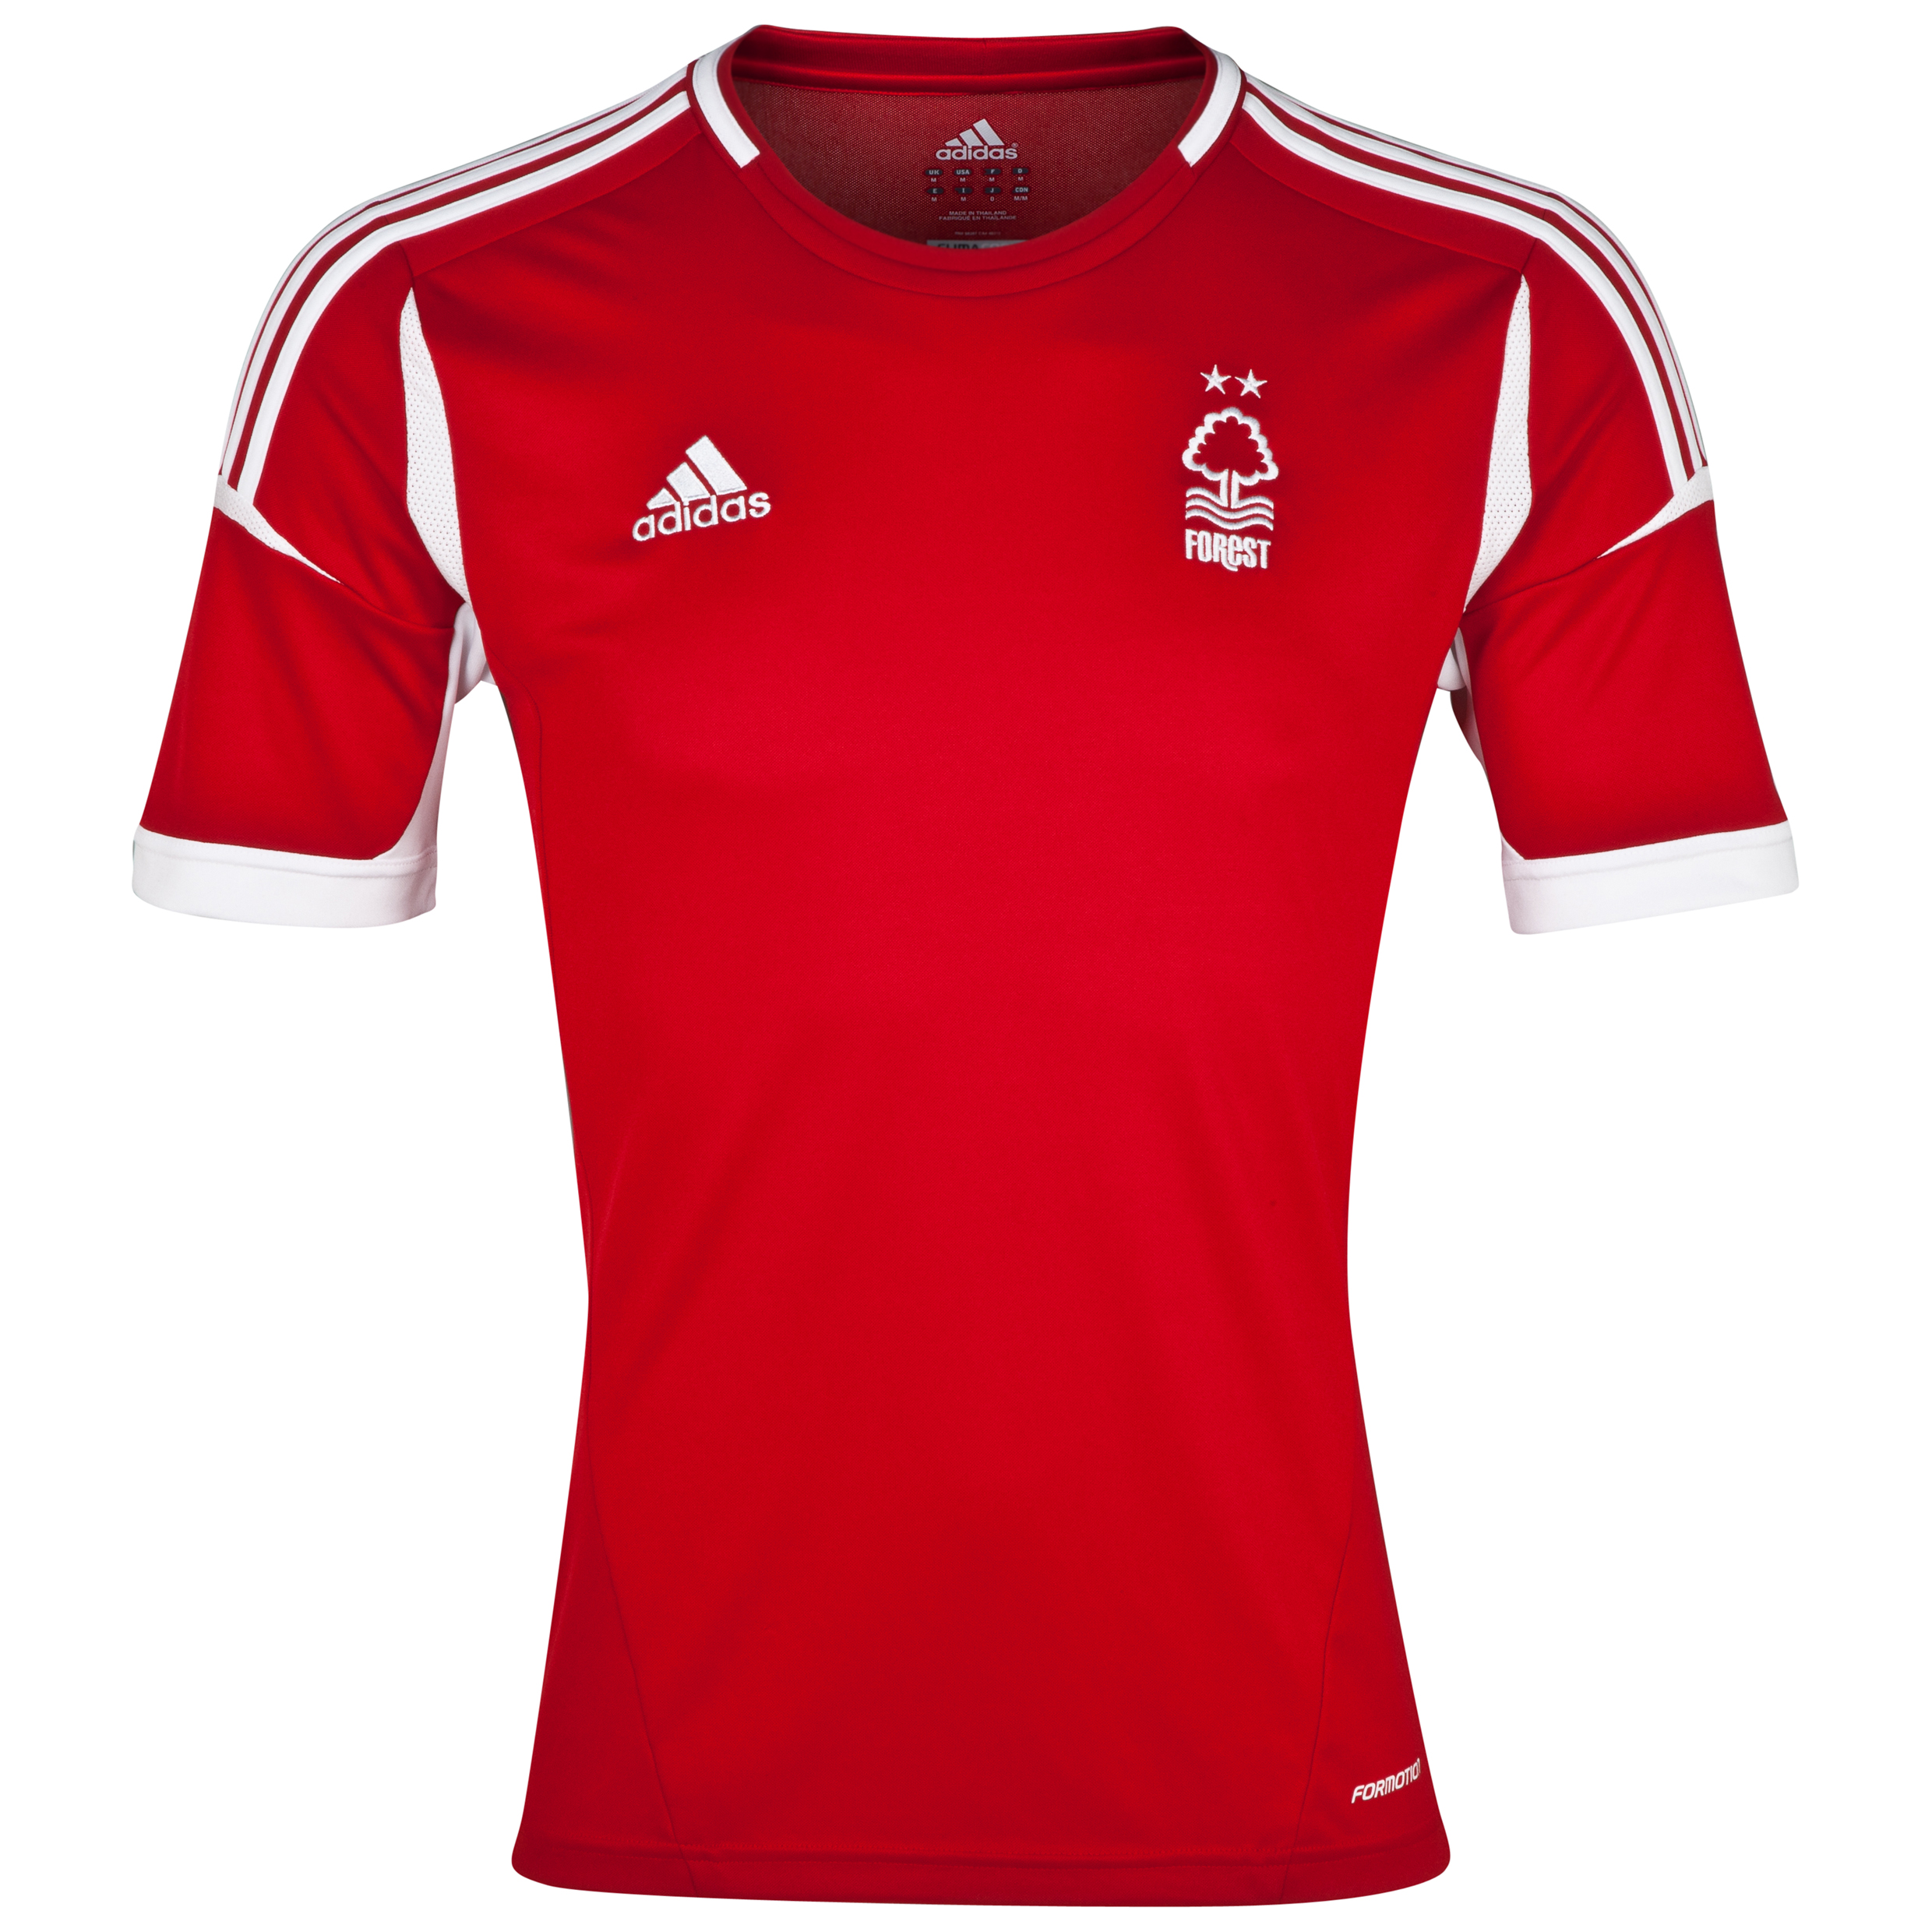 Nottingham Forest Home Shirt 2013/14